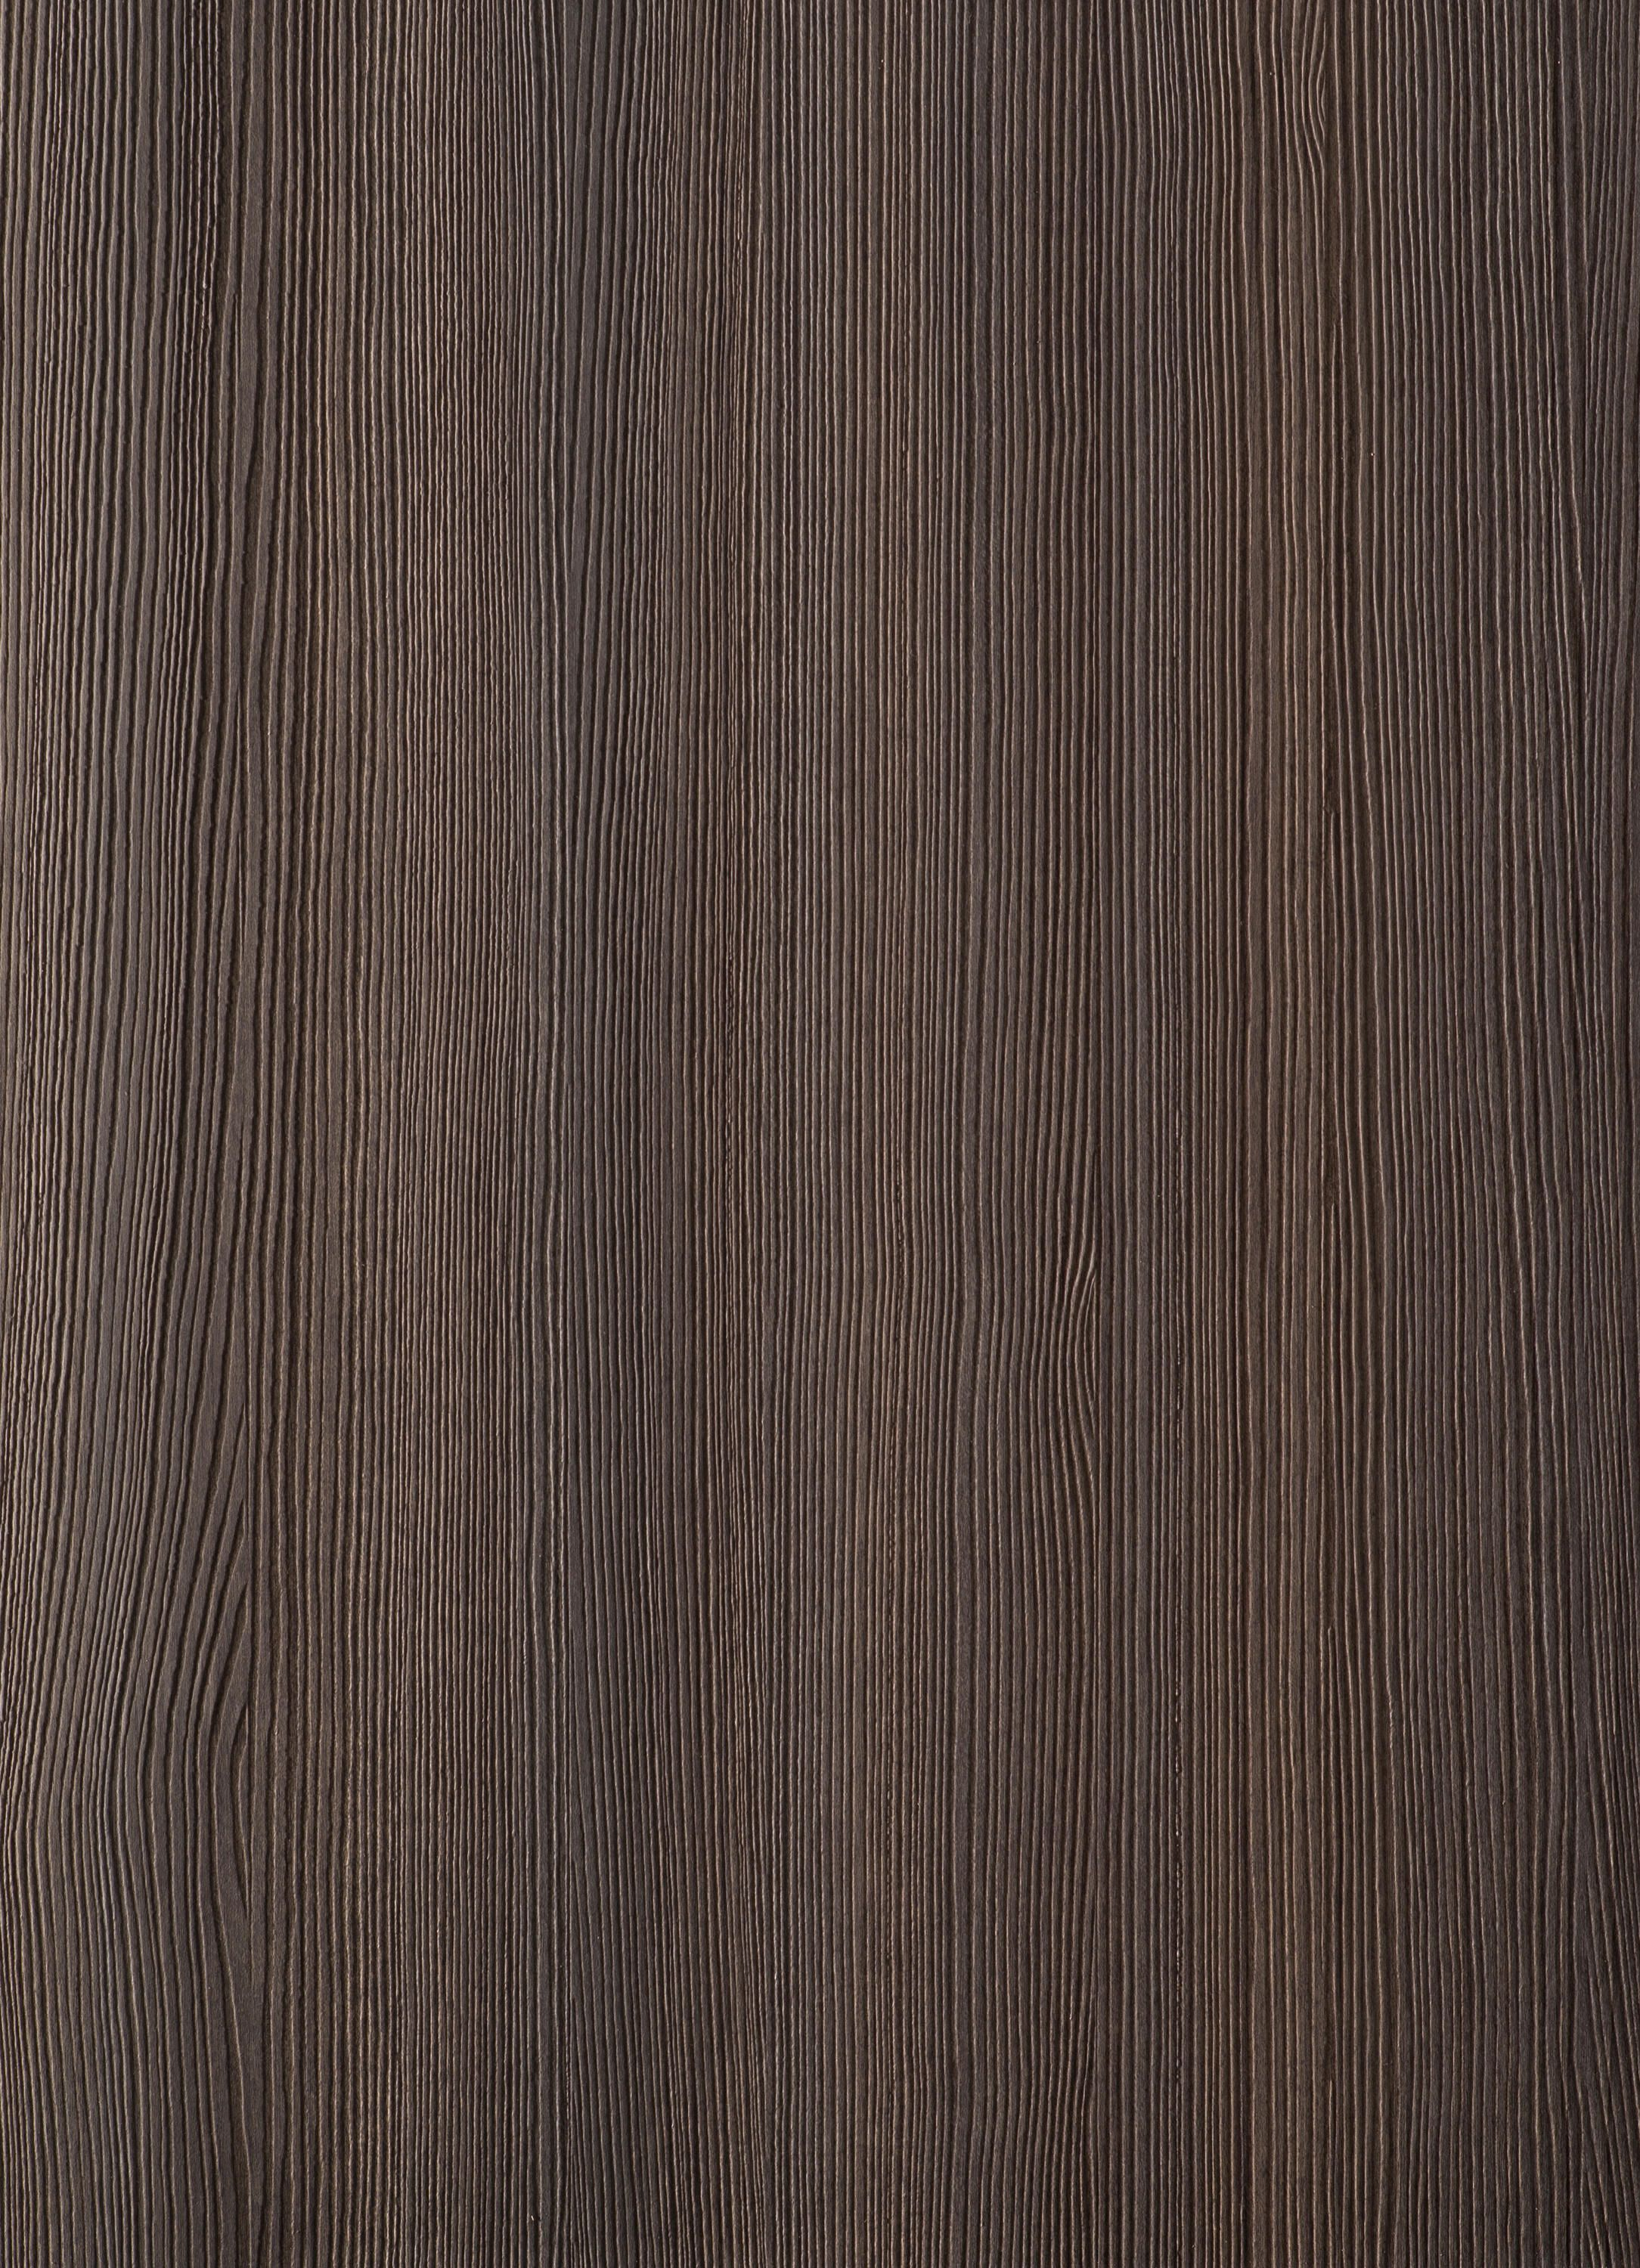 SCULTURA LG99 - Wood panels from CLEAF | Architonic